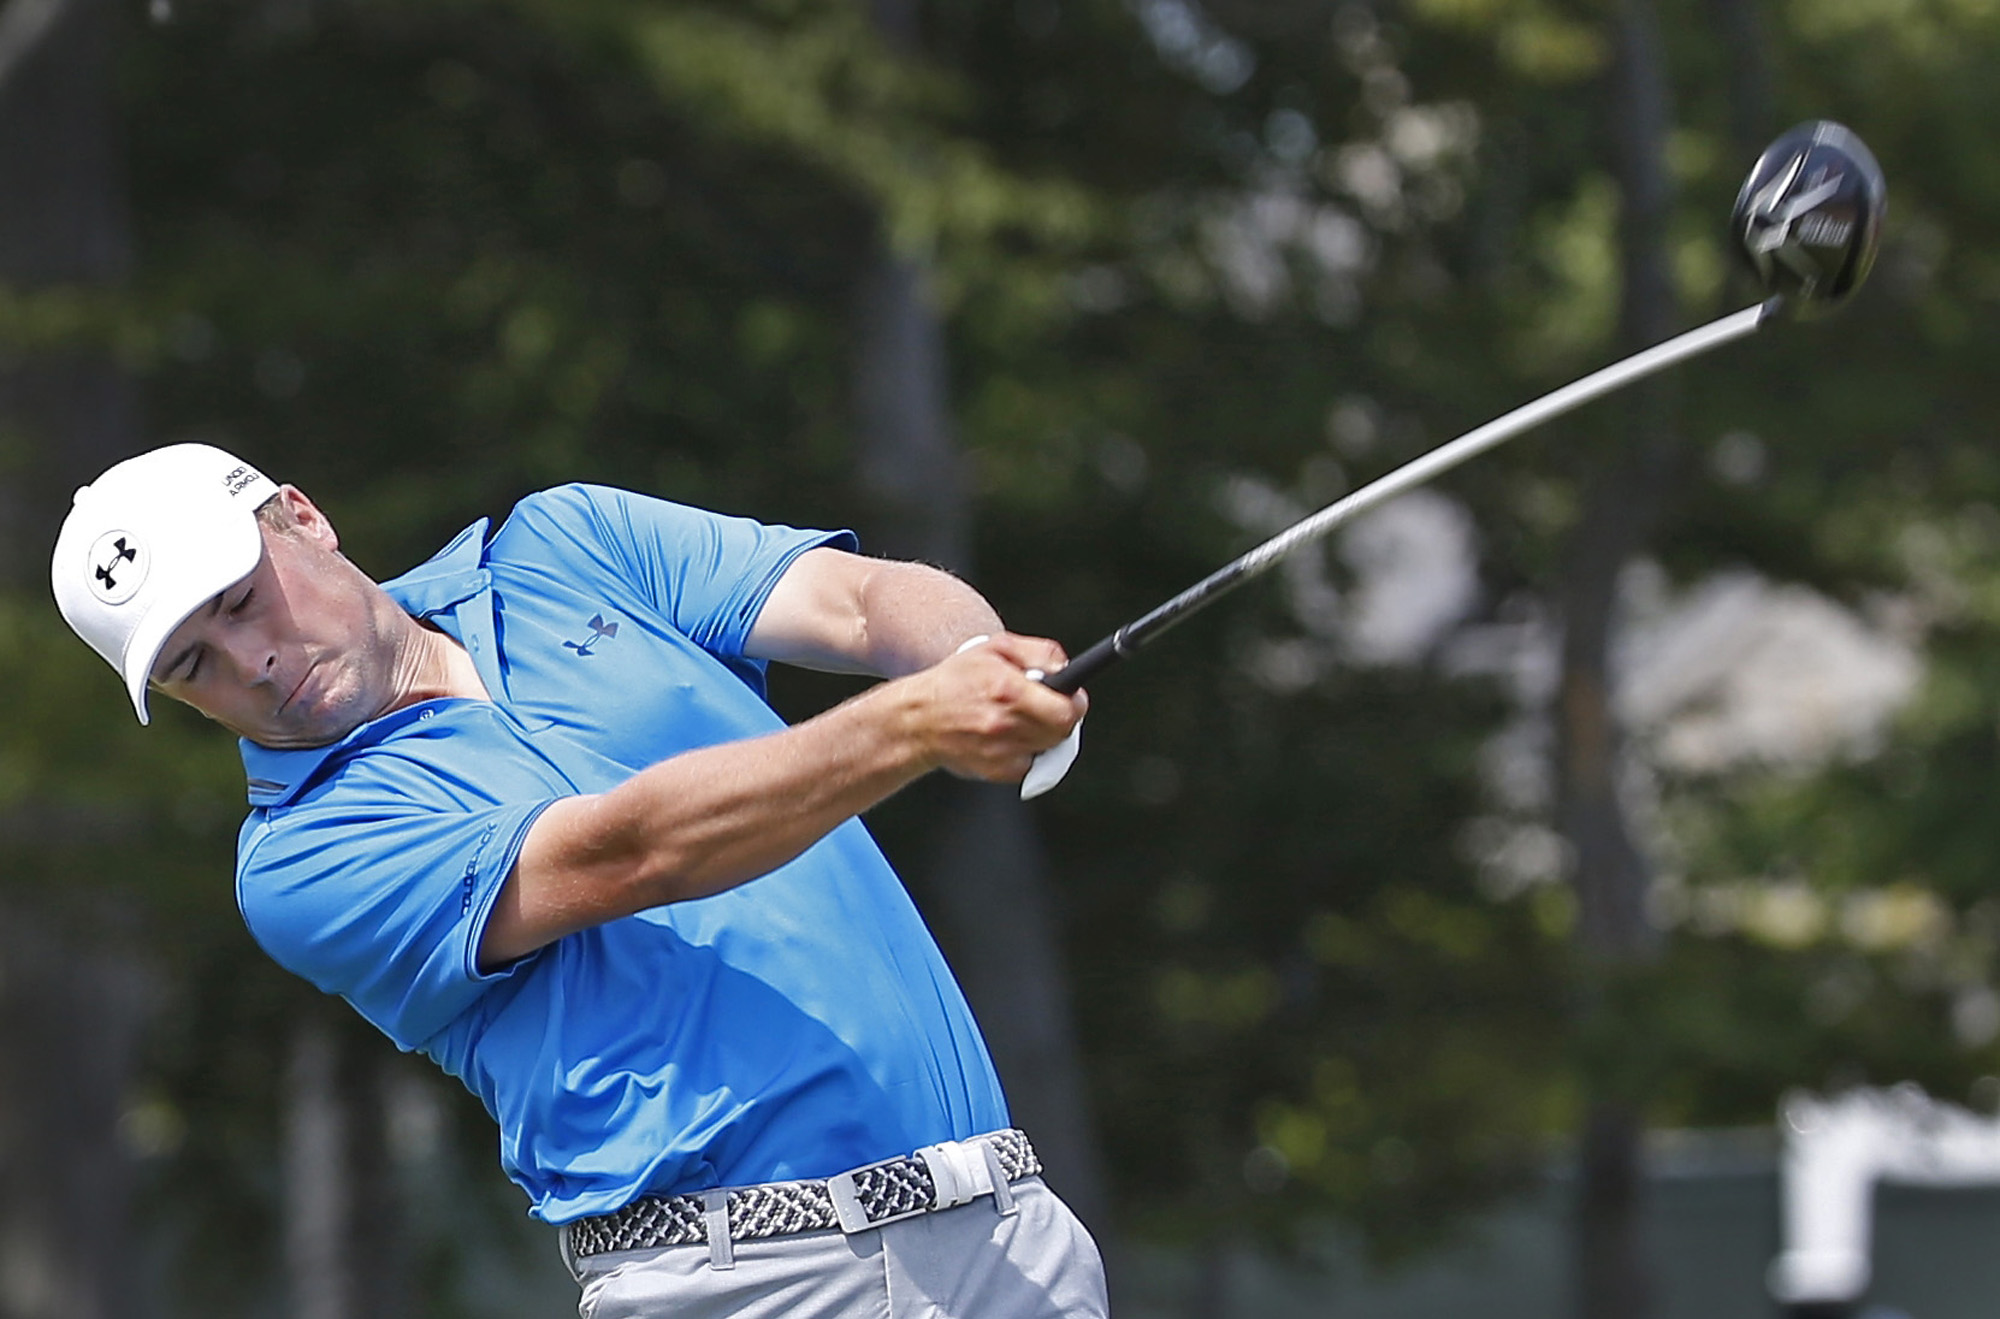 Jordan Spieth hits a drive on the first hole during the fourth round of the PGA Championship golf tournament Sunday, Aug. 16, 2015, at Whistling Straits in Haven, Wis. (AP Photo/Julio Cortez)